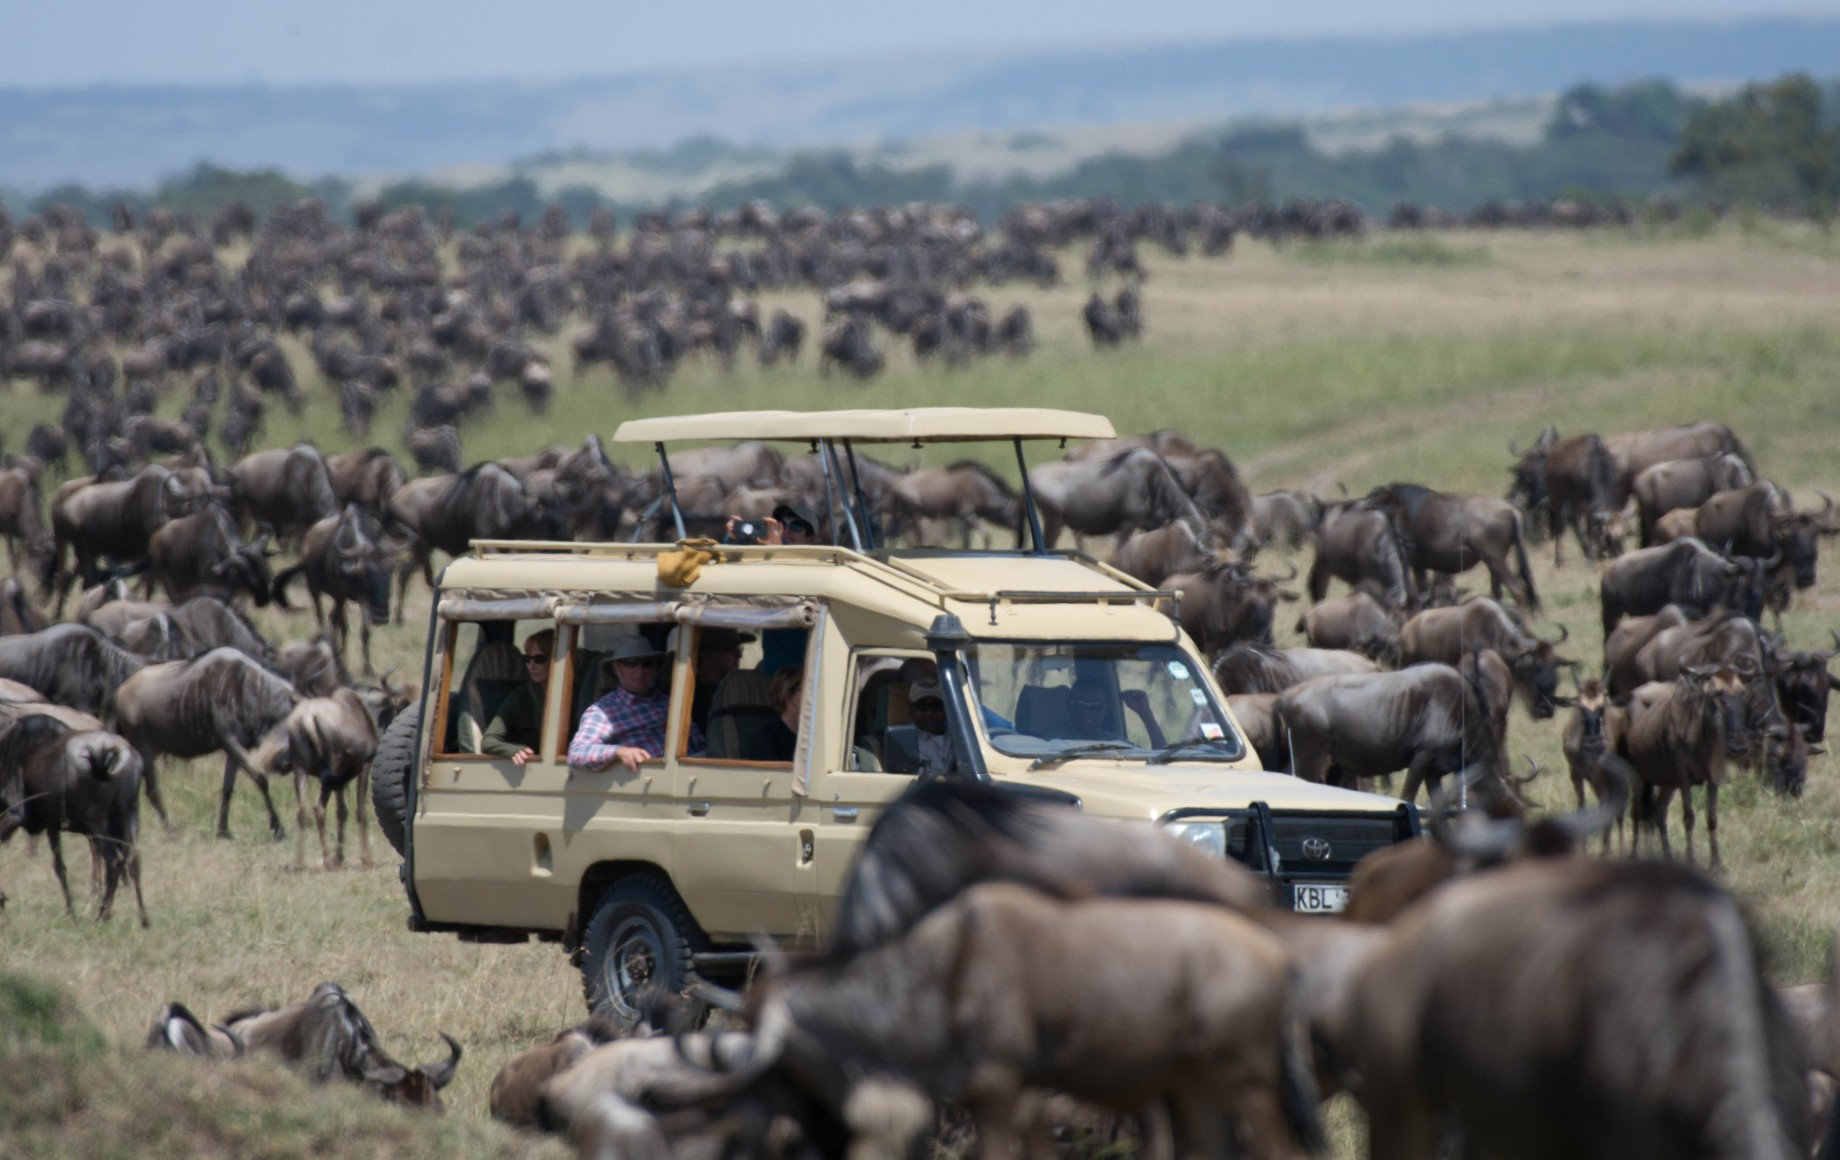 A jeep surrounded by rhinos